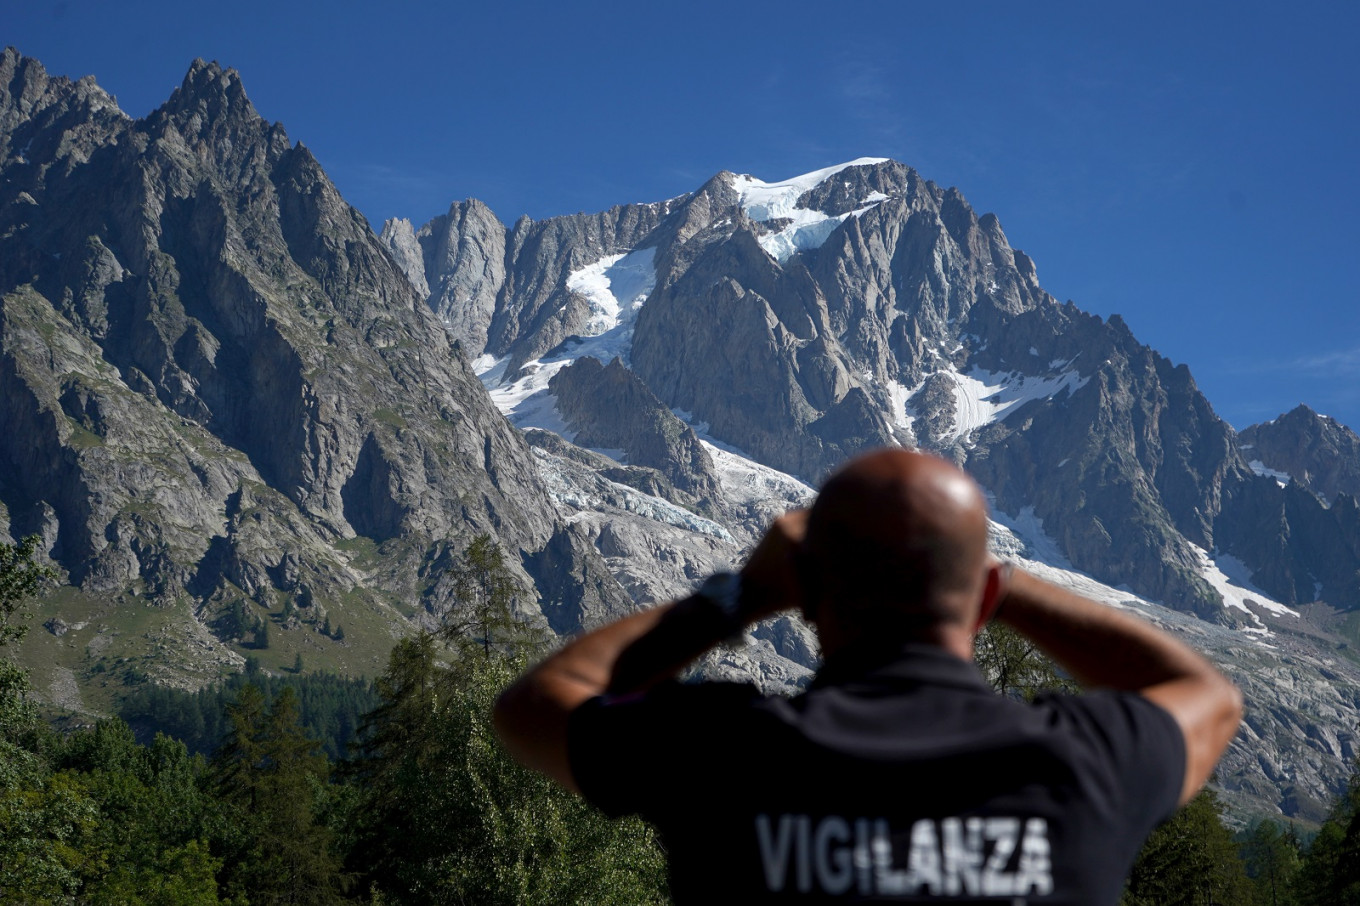 Italy resort lifts alert on melting glacier threat